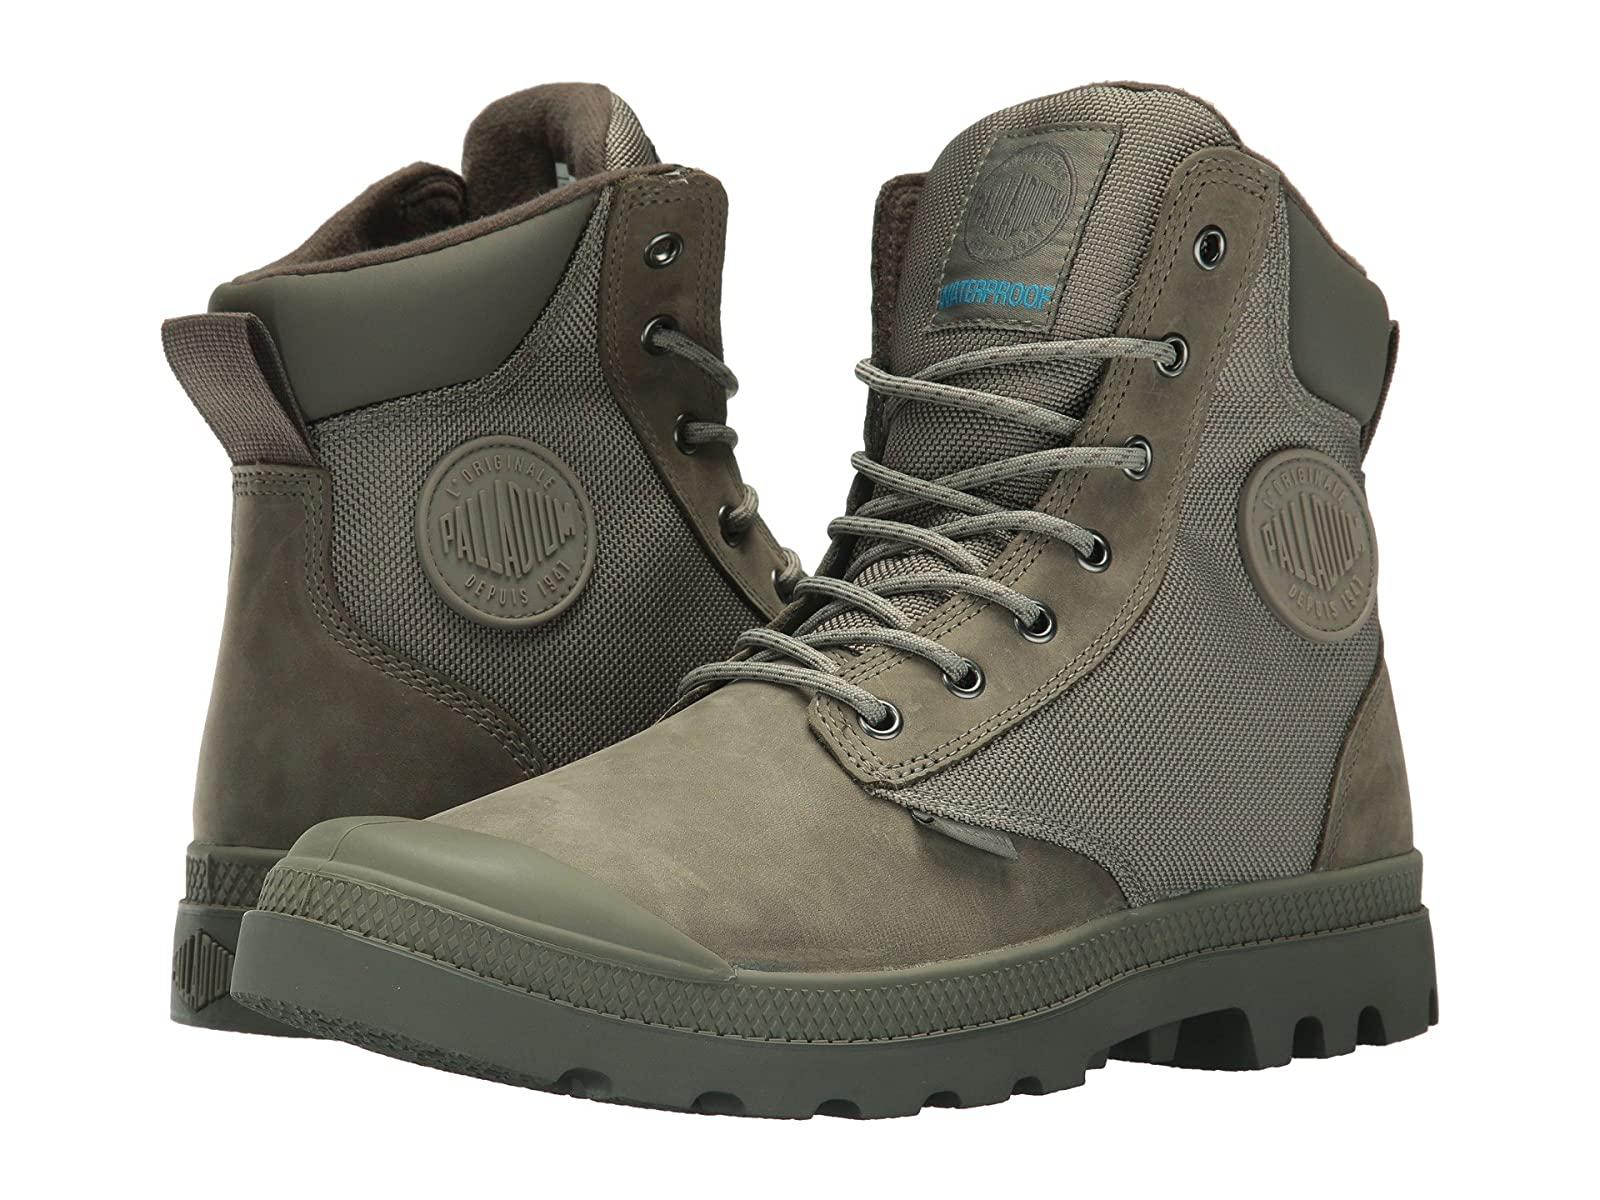 Palladium Pampa Sport Cuff WPNCheap and distinctive eye-catching shoes